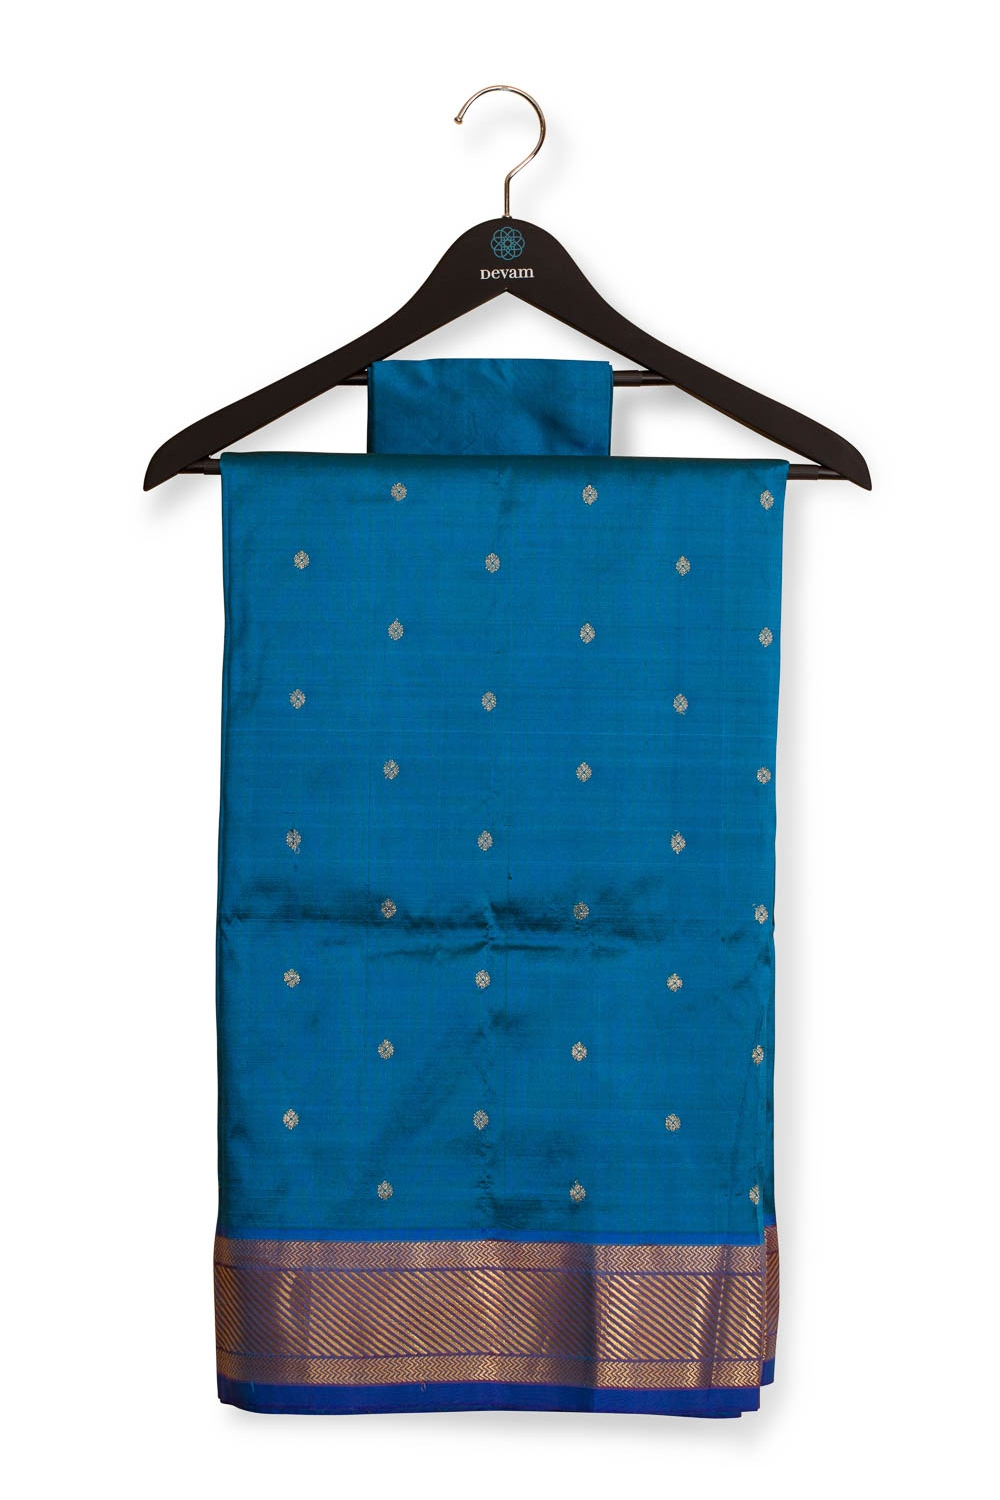 Vivid Blue Handloom Paithani With Gold Floral Designs